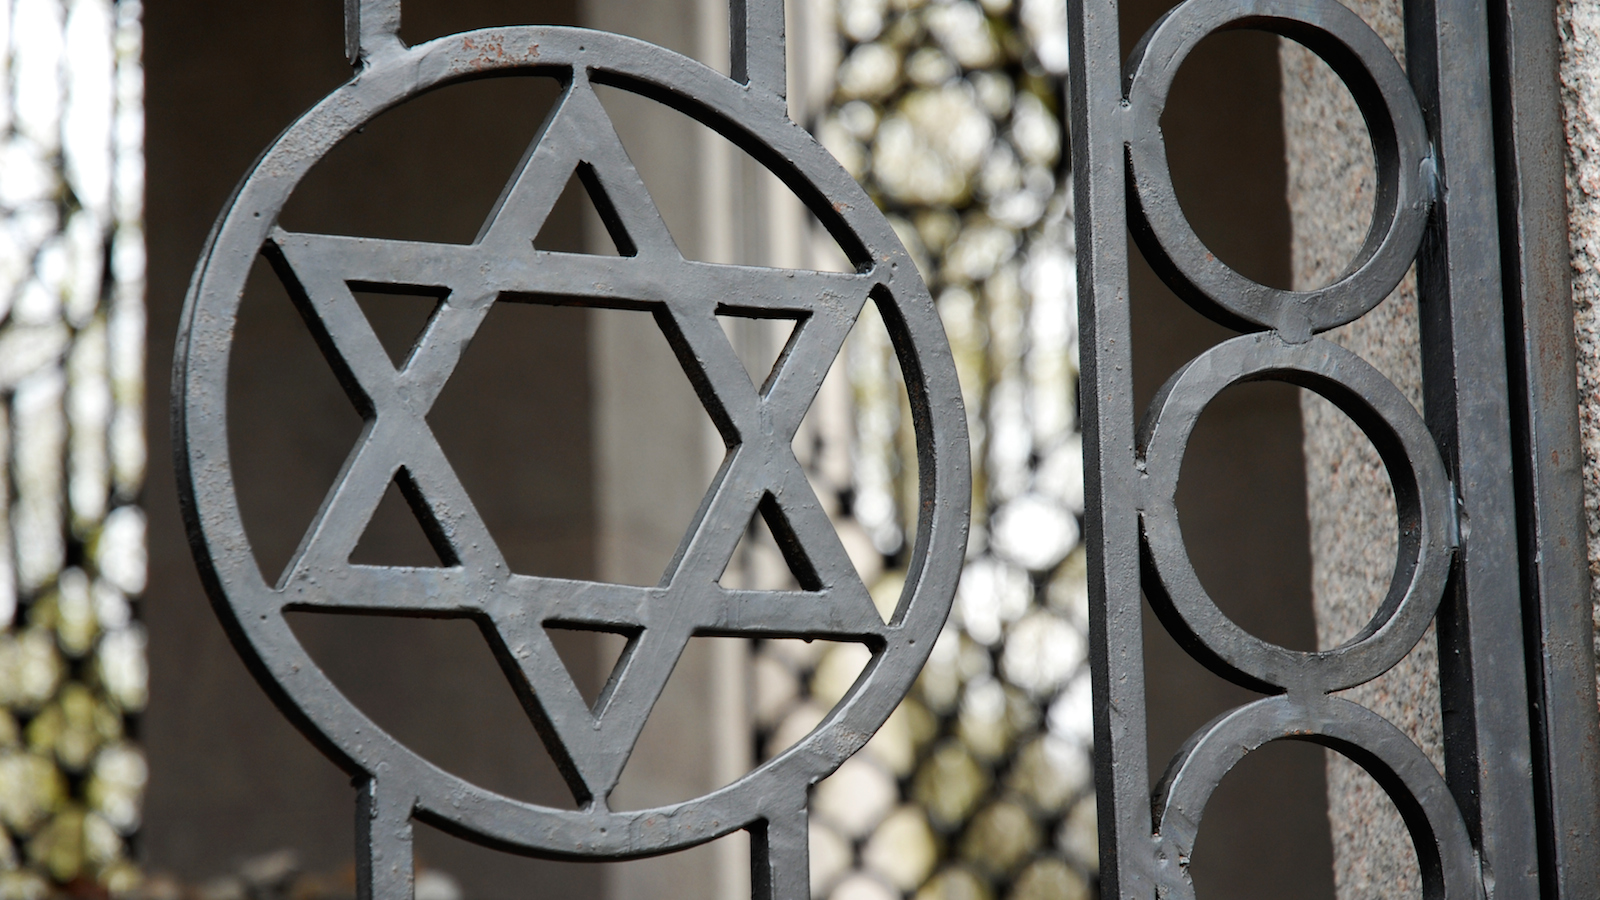 How to Convert to Judaism | My Jewish Learning